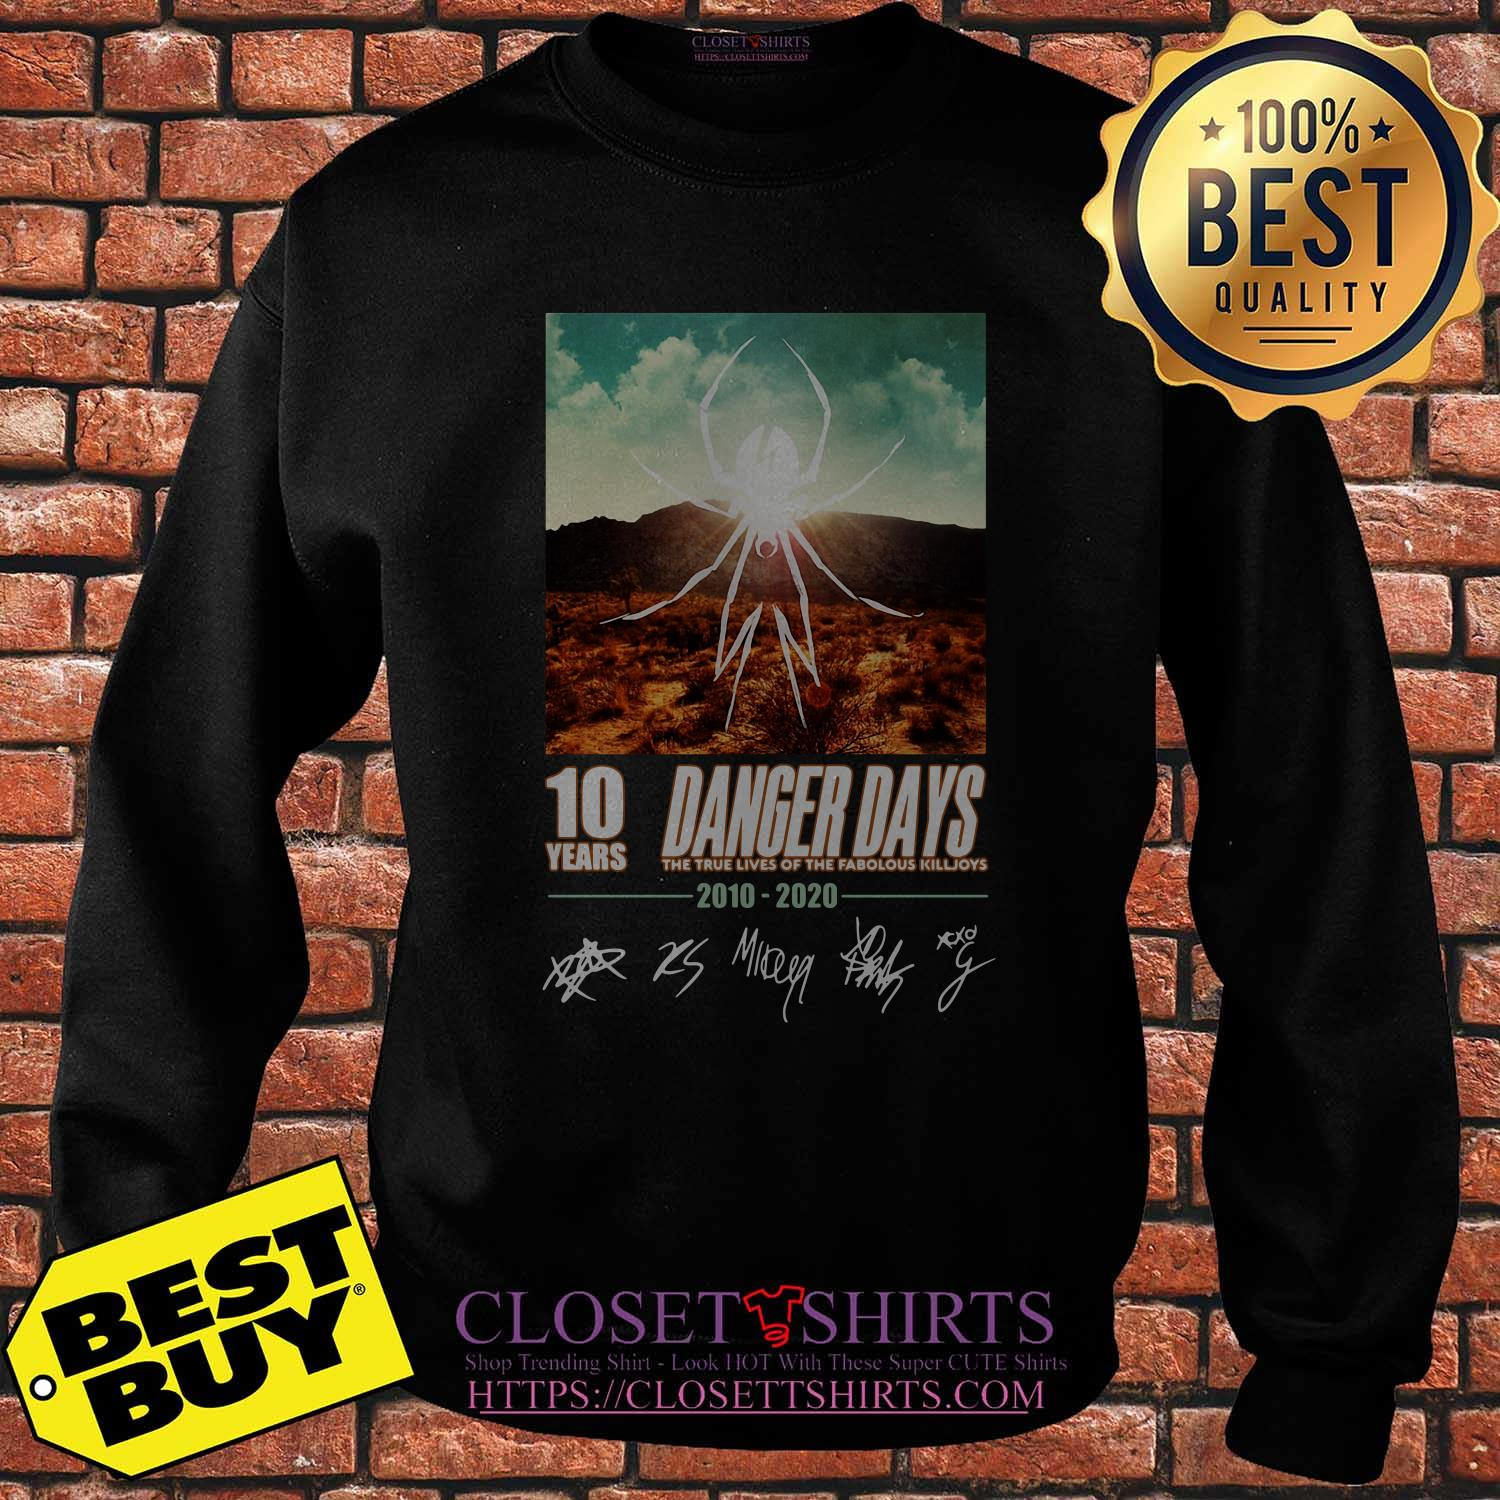 Spider 10 Years Danger Days True Lives Fabolous Killjoys 2010 2020 Signatures Sweatshirt